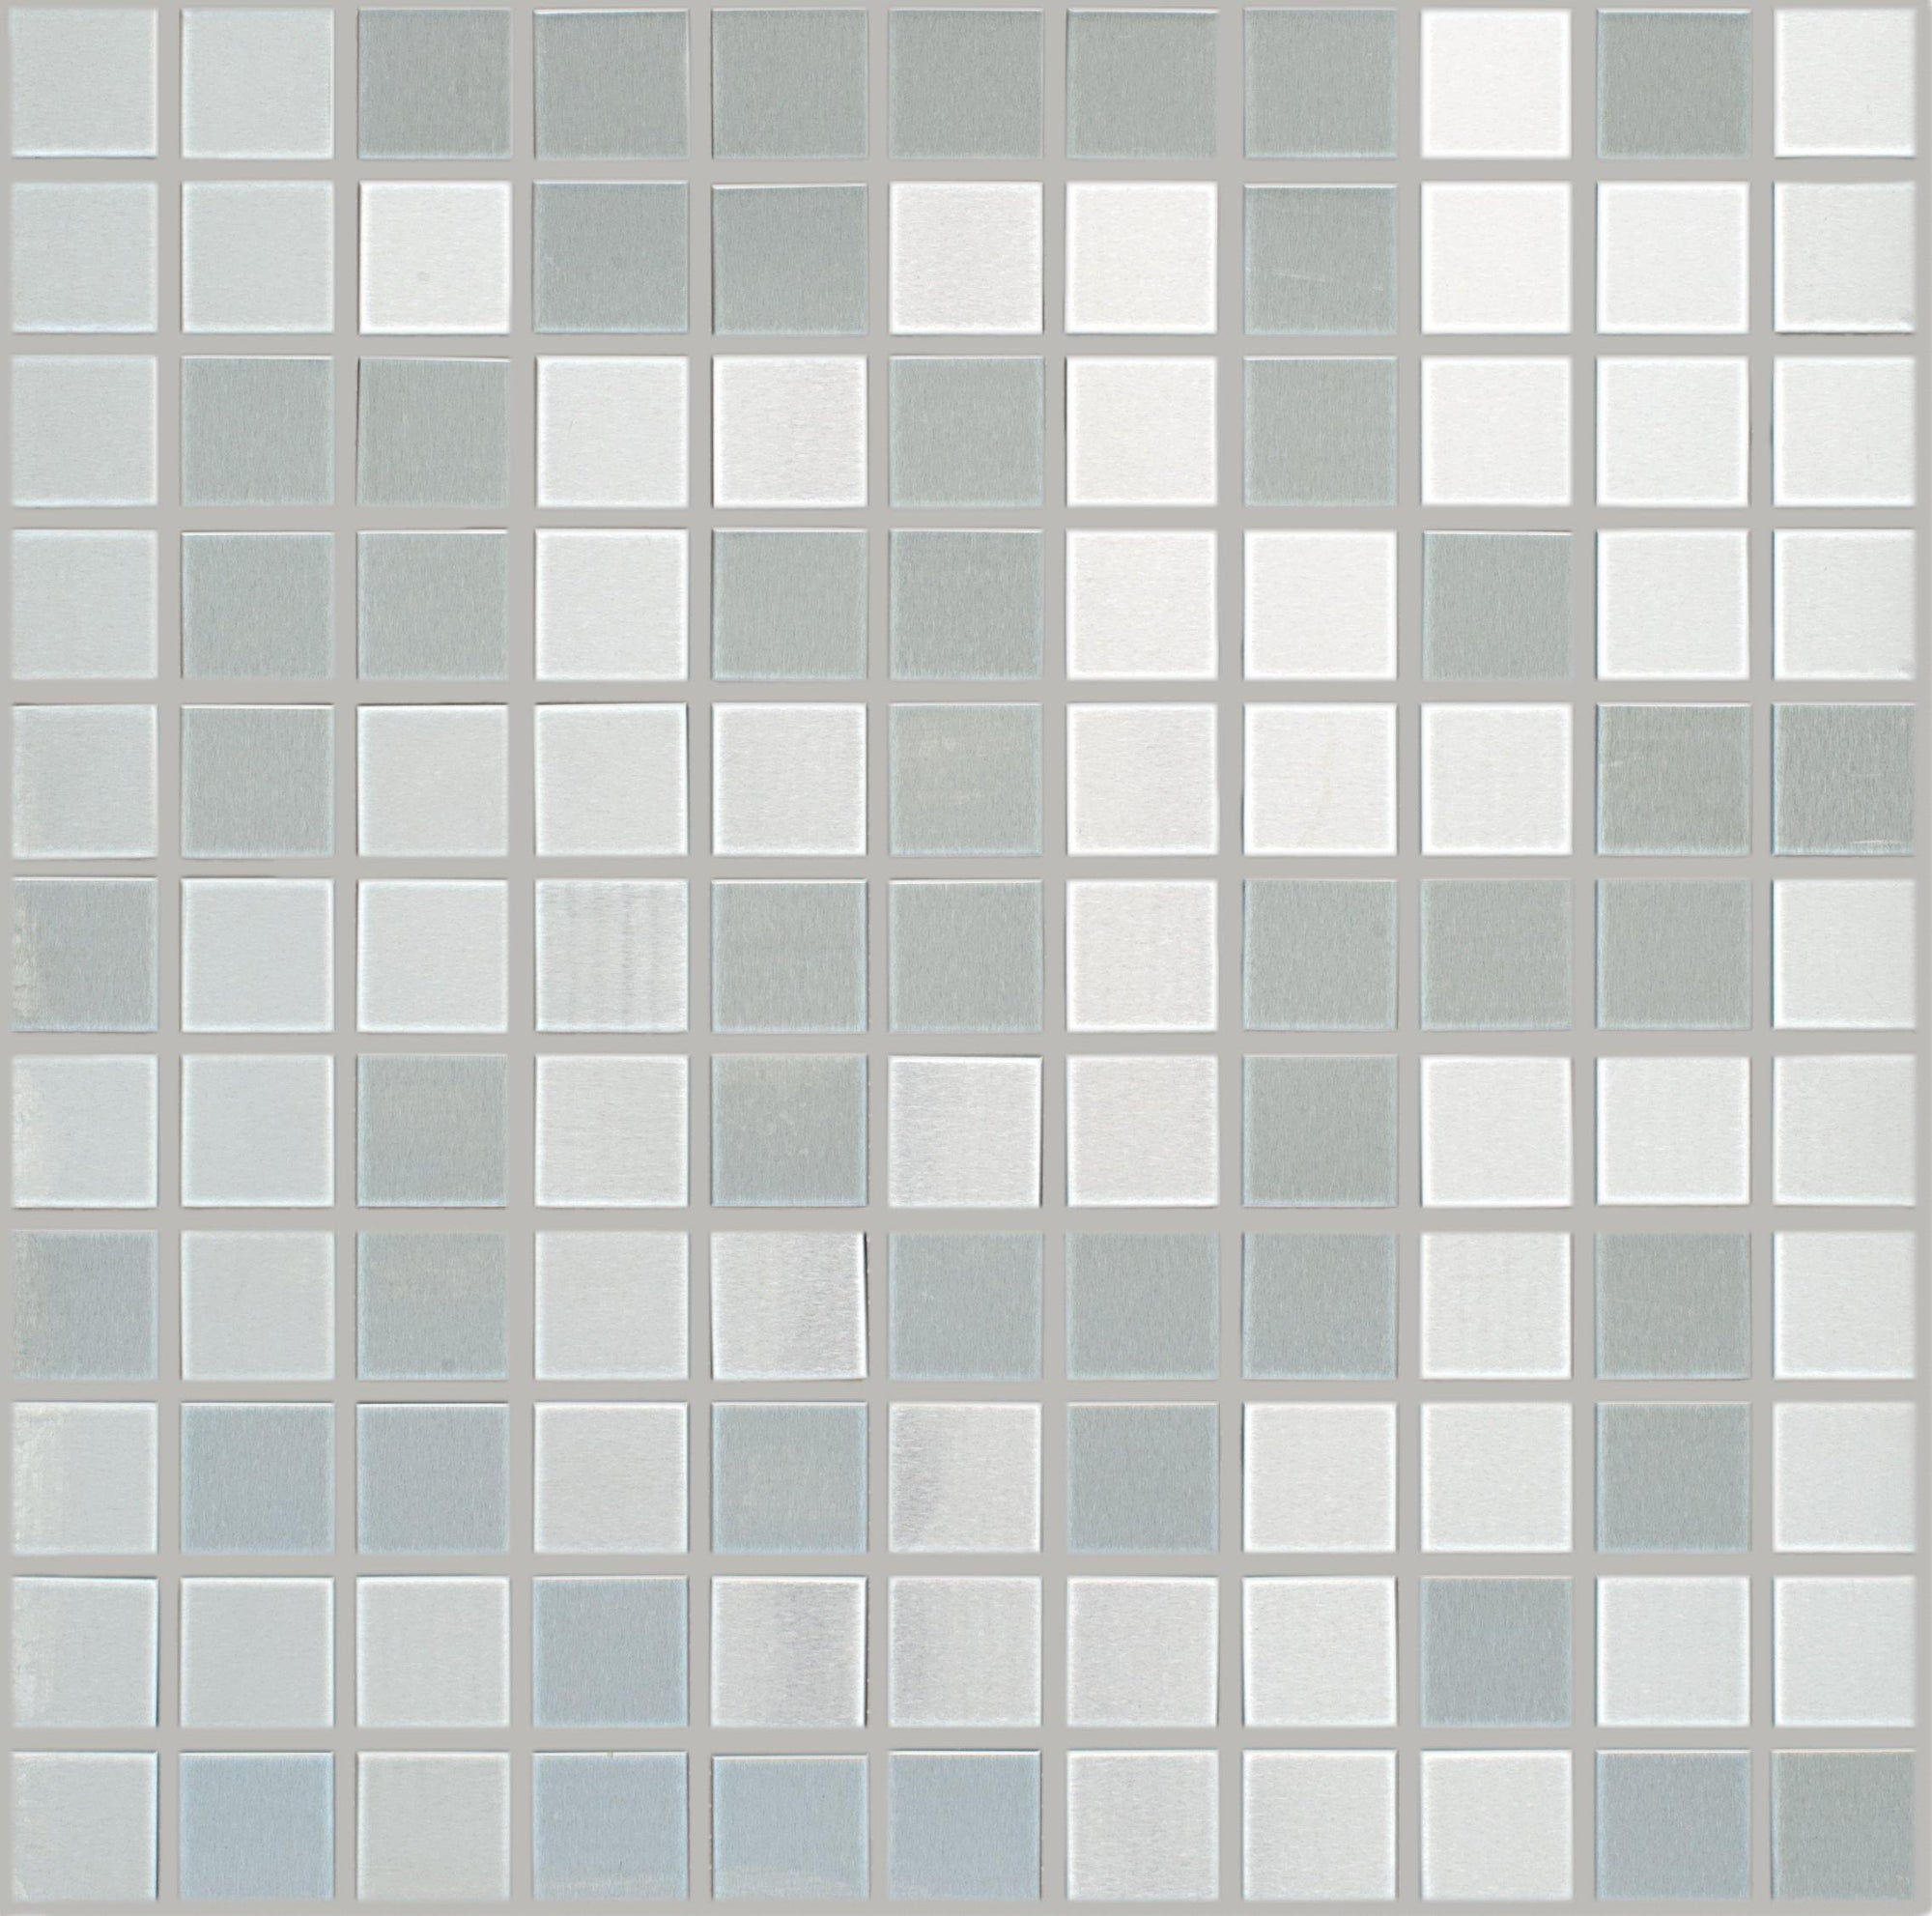 "Brushed Stainless Steel 1"" x 1"" Mosaic"